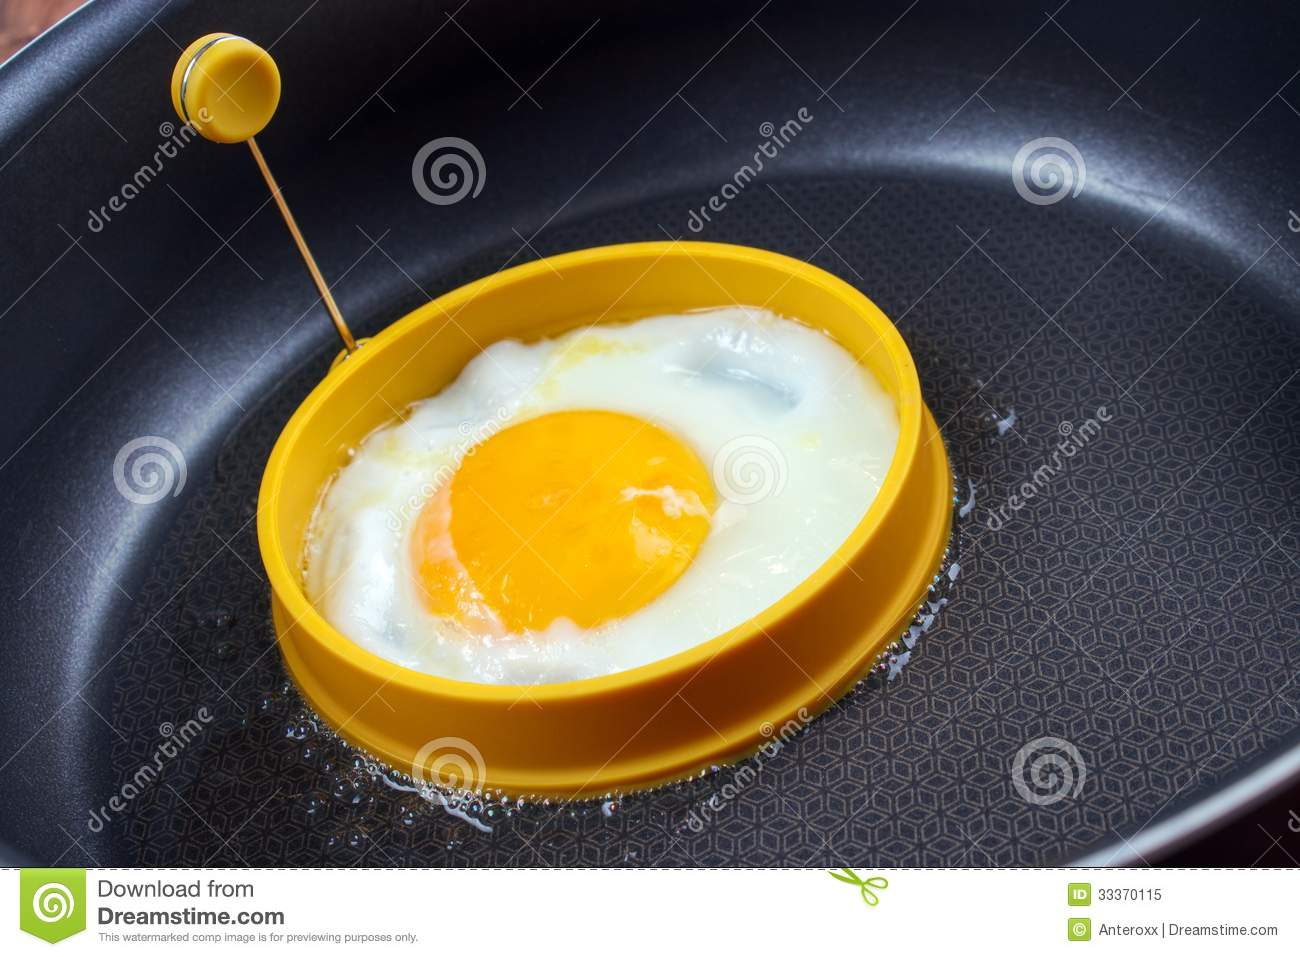 Egg Fry Form In Use Royalty Free Stock Photo - Image: 33370115